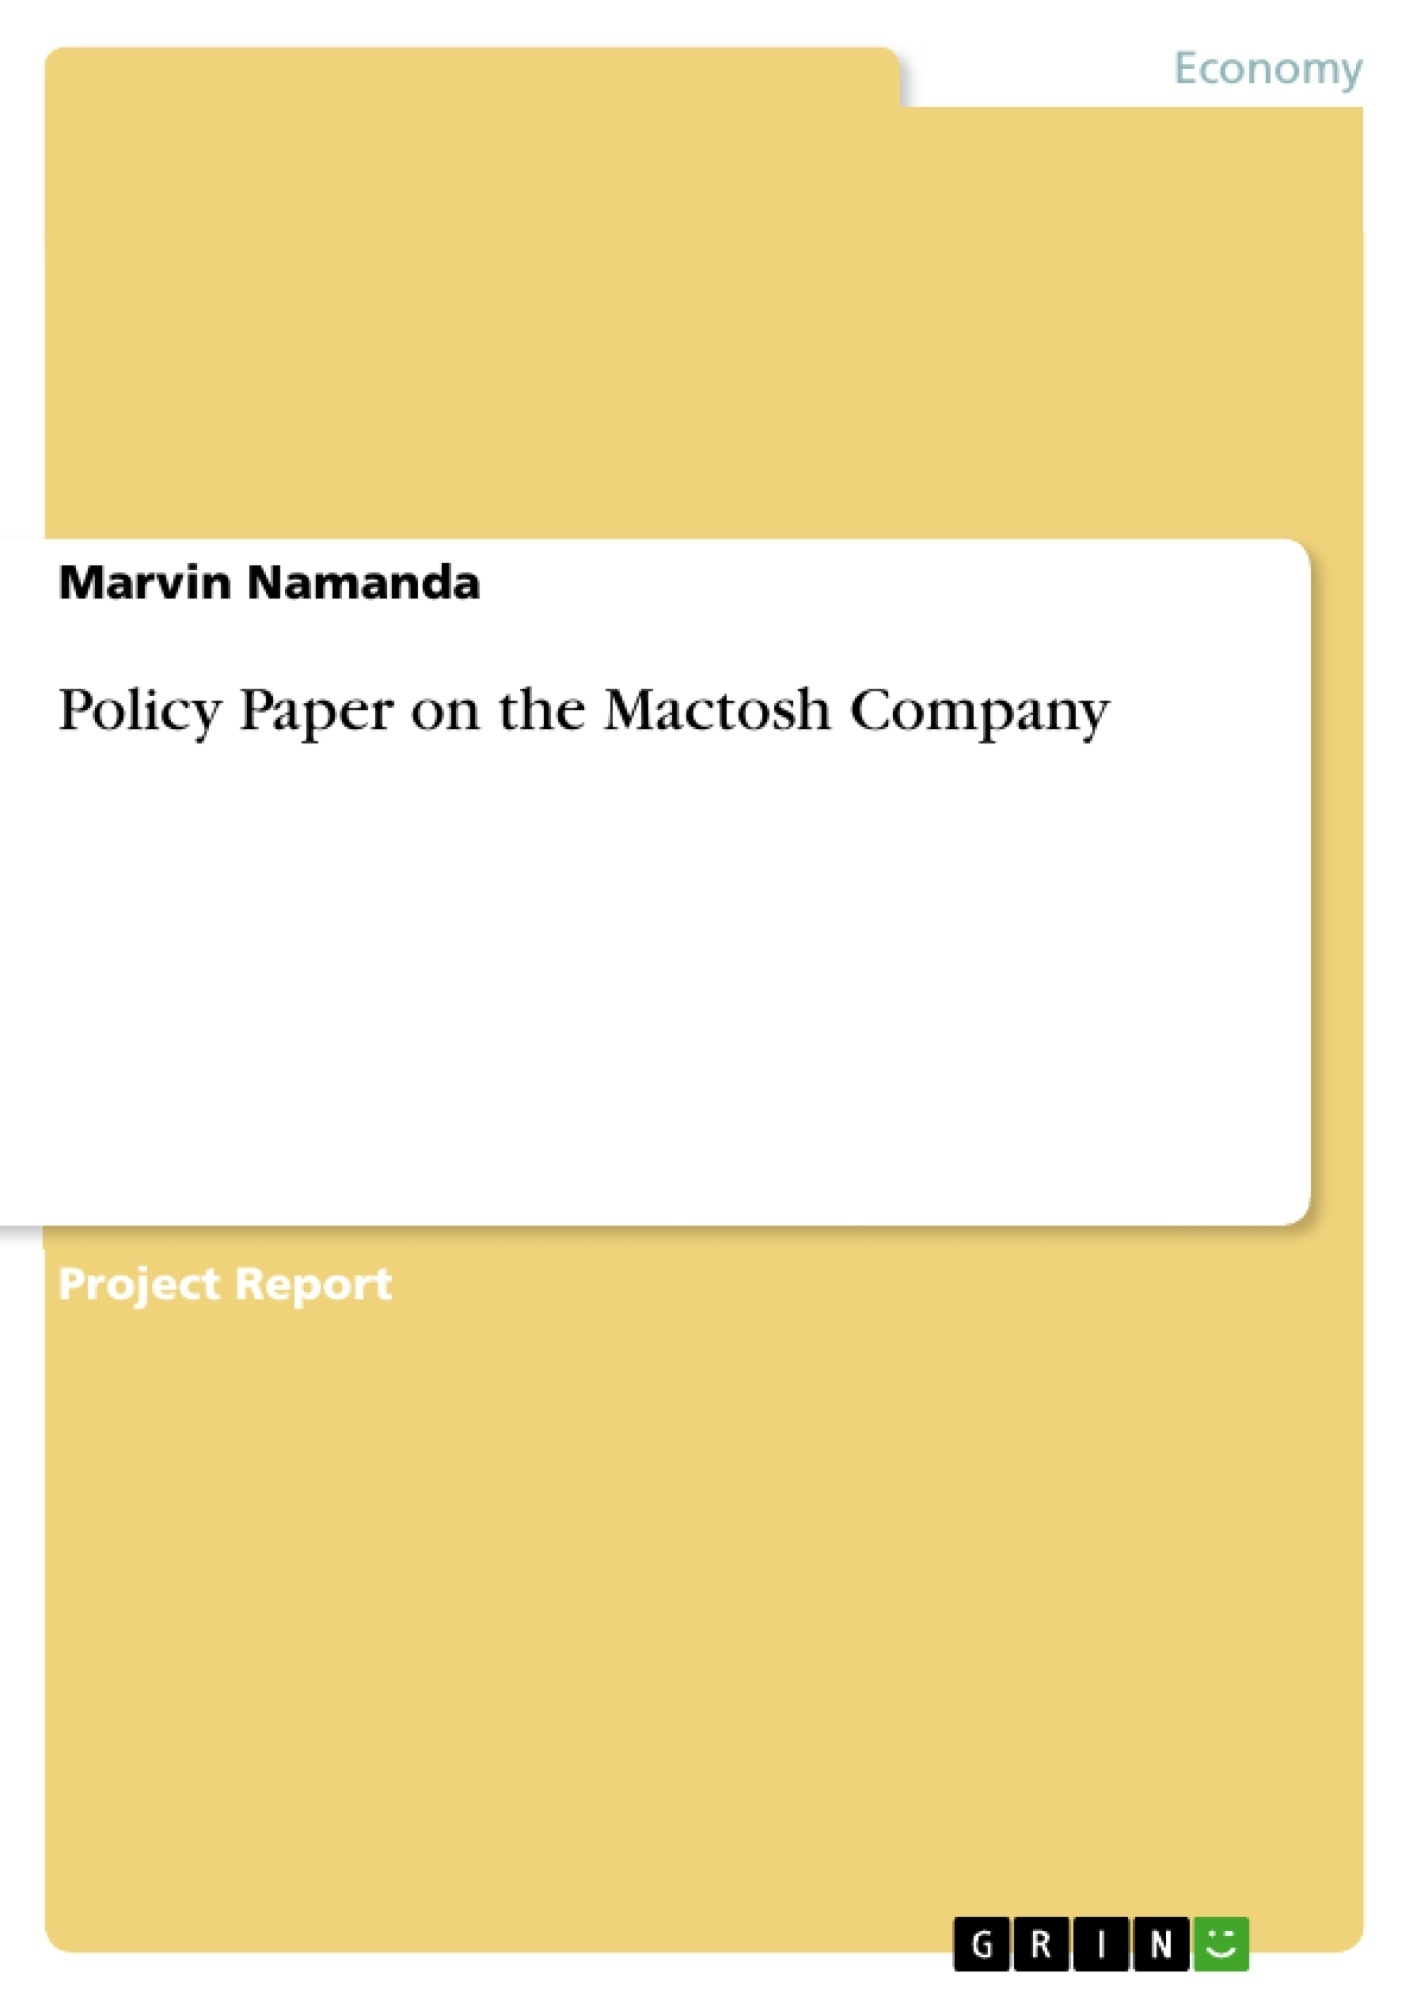 Title: Policy Paper on the Mactosh Company